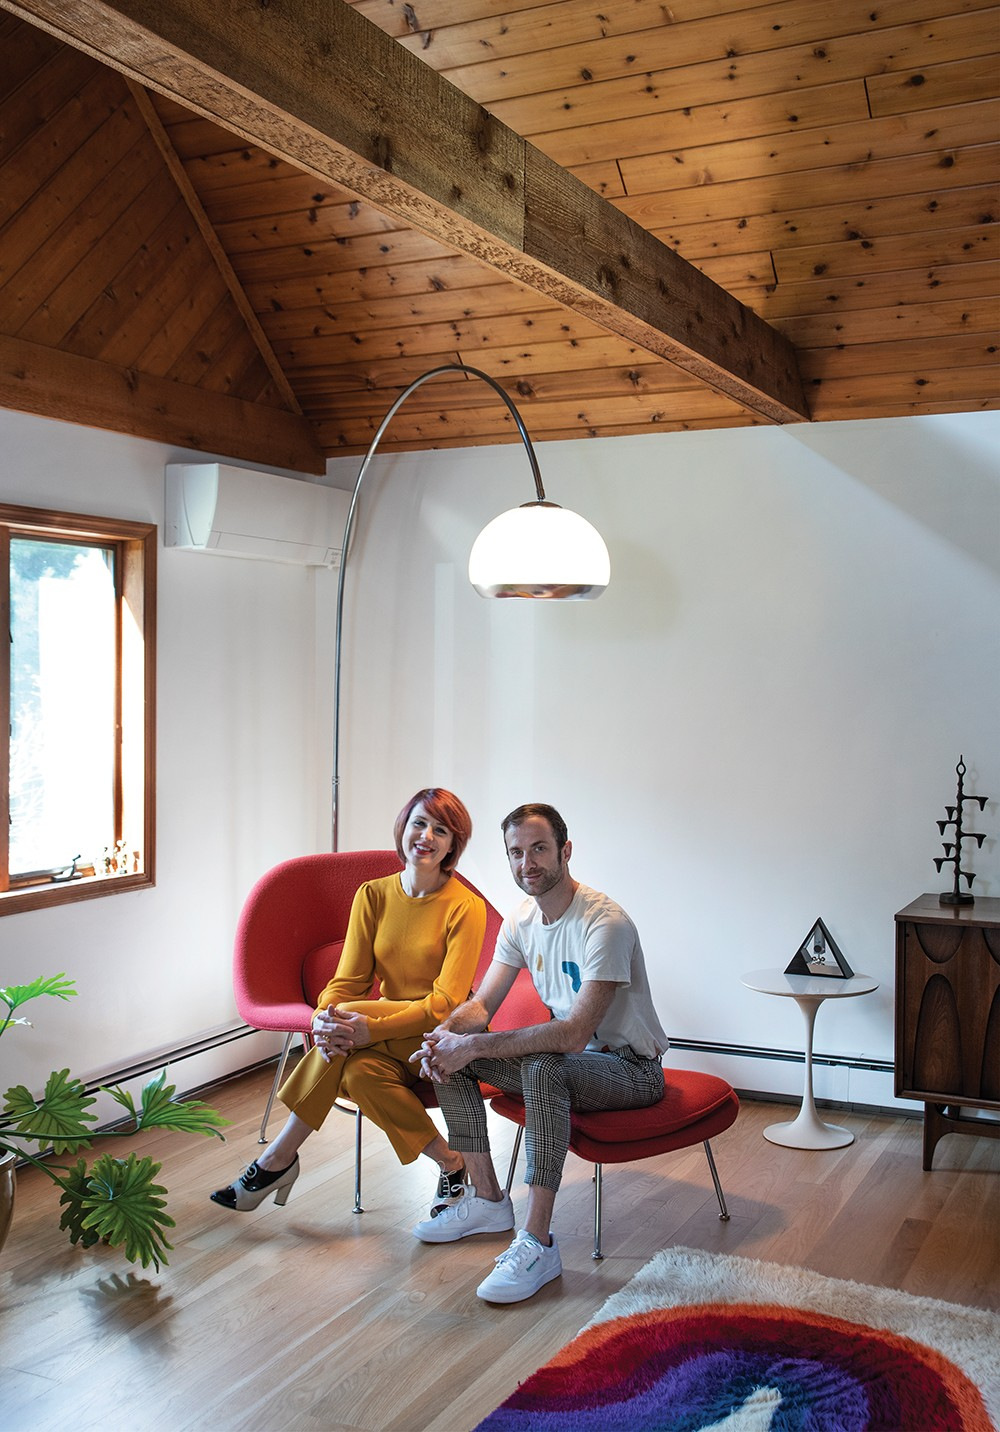 A Midcentury Modern Temple At Home With Musicians Hilary Davis And Jordan Moser House Profiles Hudson Valley Chronogram Magazine